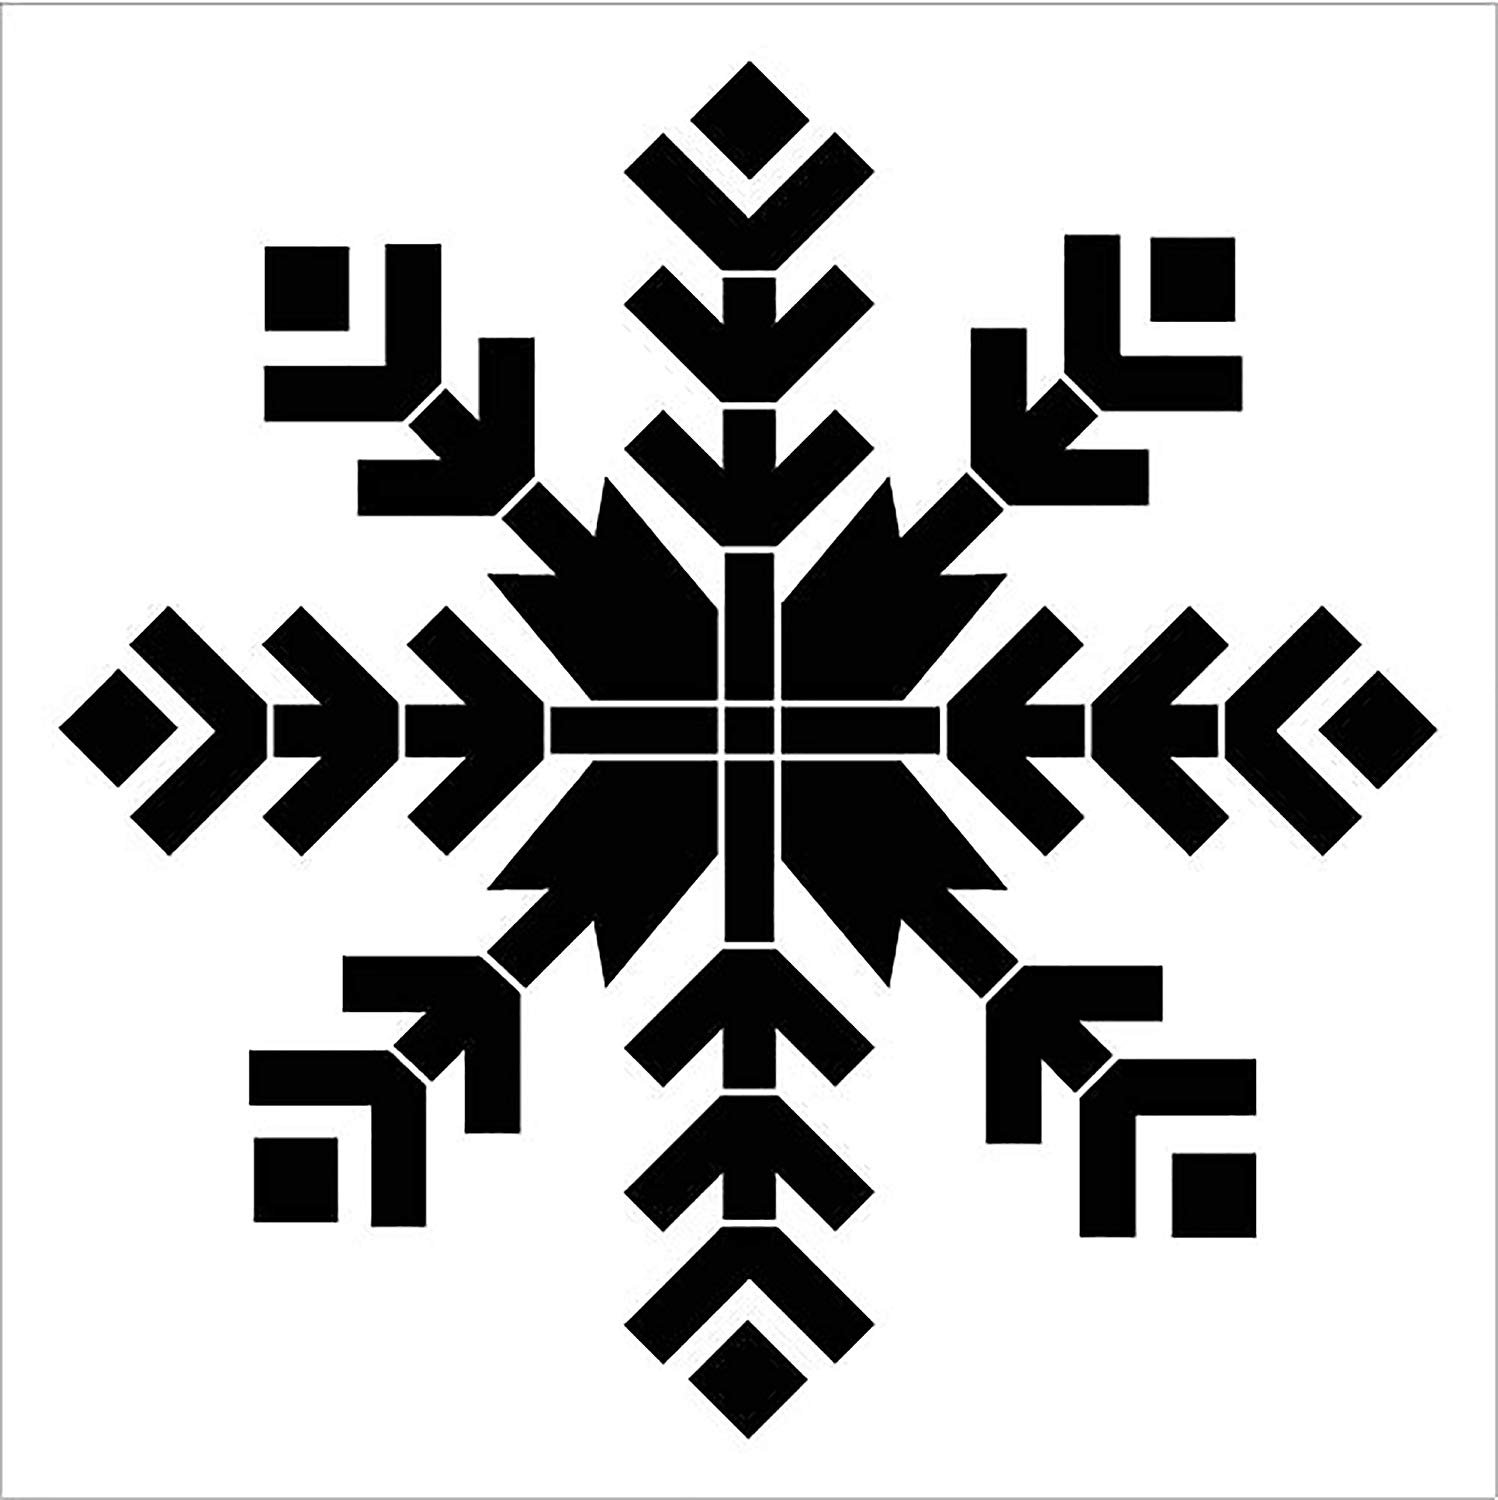 8 Point Arrow Snowflake Stencil by StudioR12 | DIY Vintage Holiday Home Decor | Rustic Farmhouse Christmas Wall Art | Craft & Paint Wood Signs | Reusable Mylar Template | Select Size